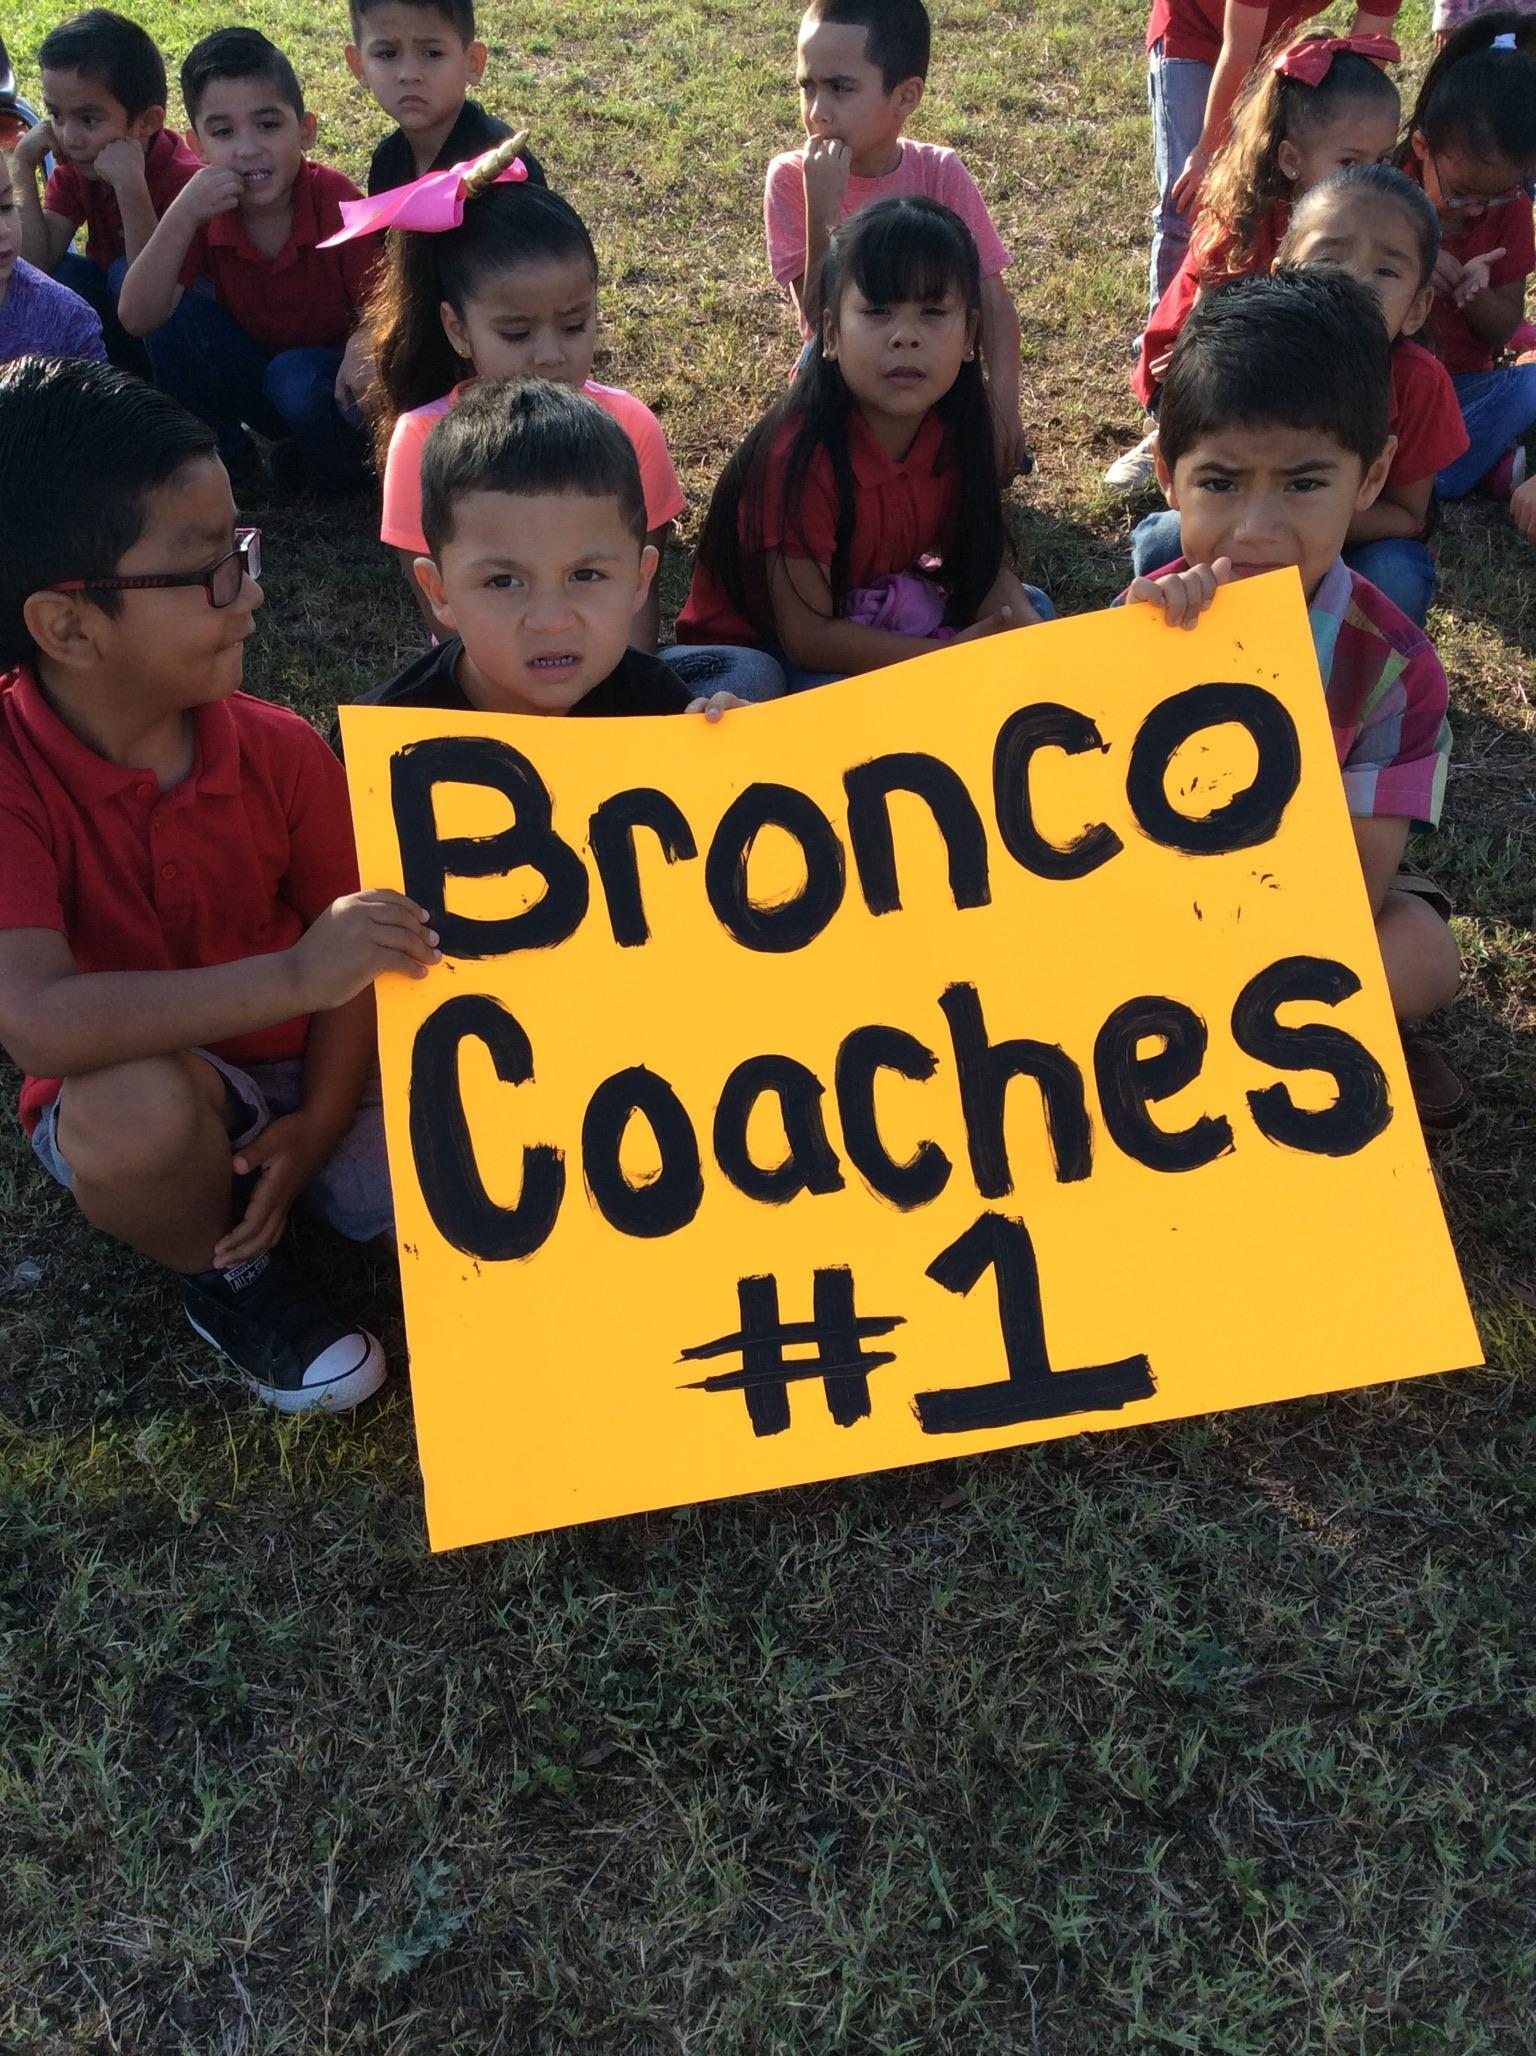 Bronco Coaches #1